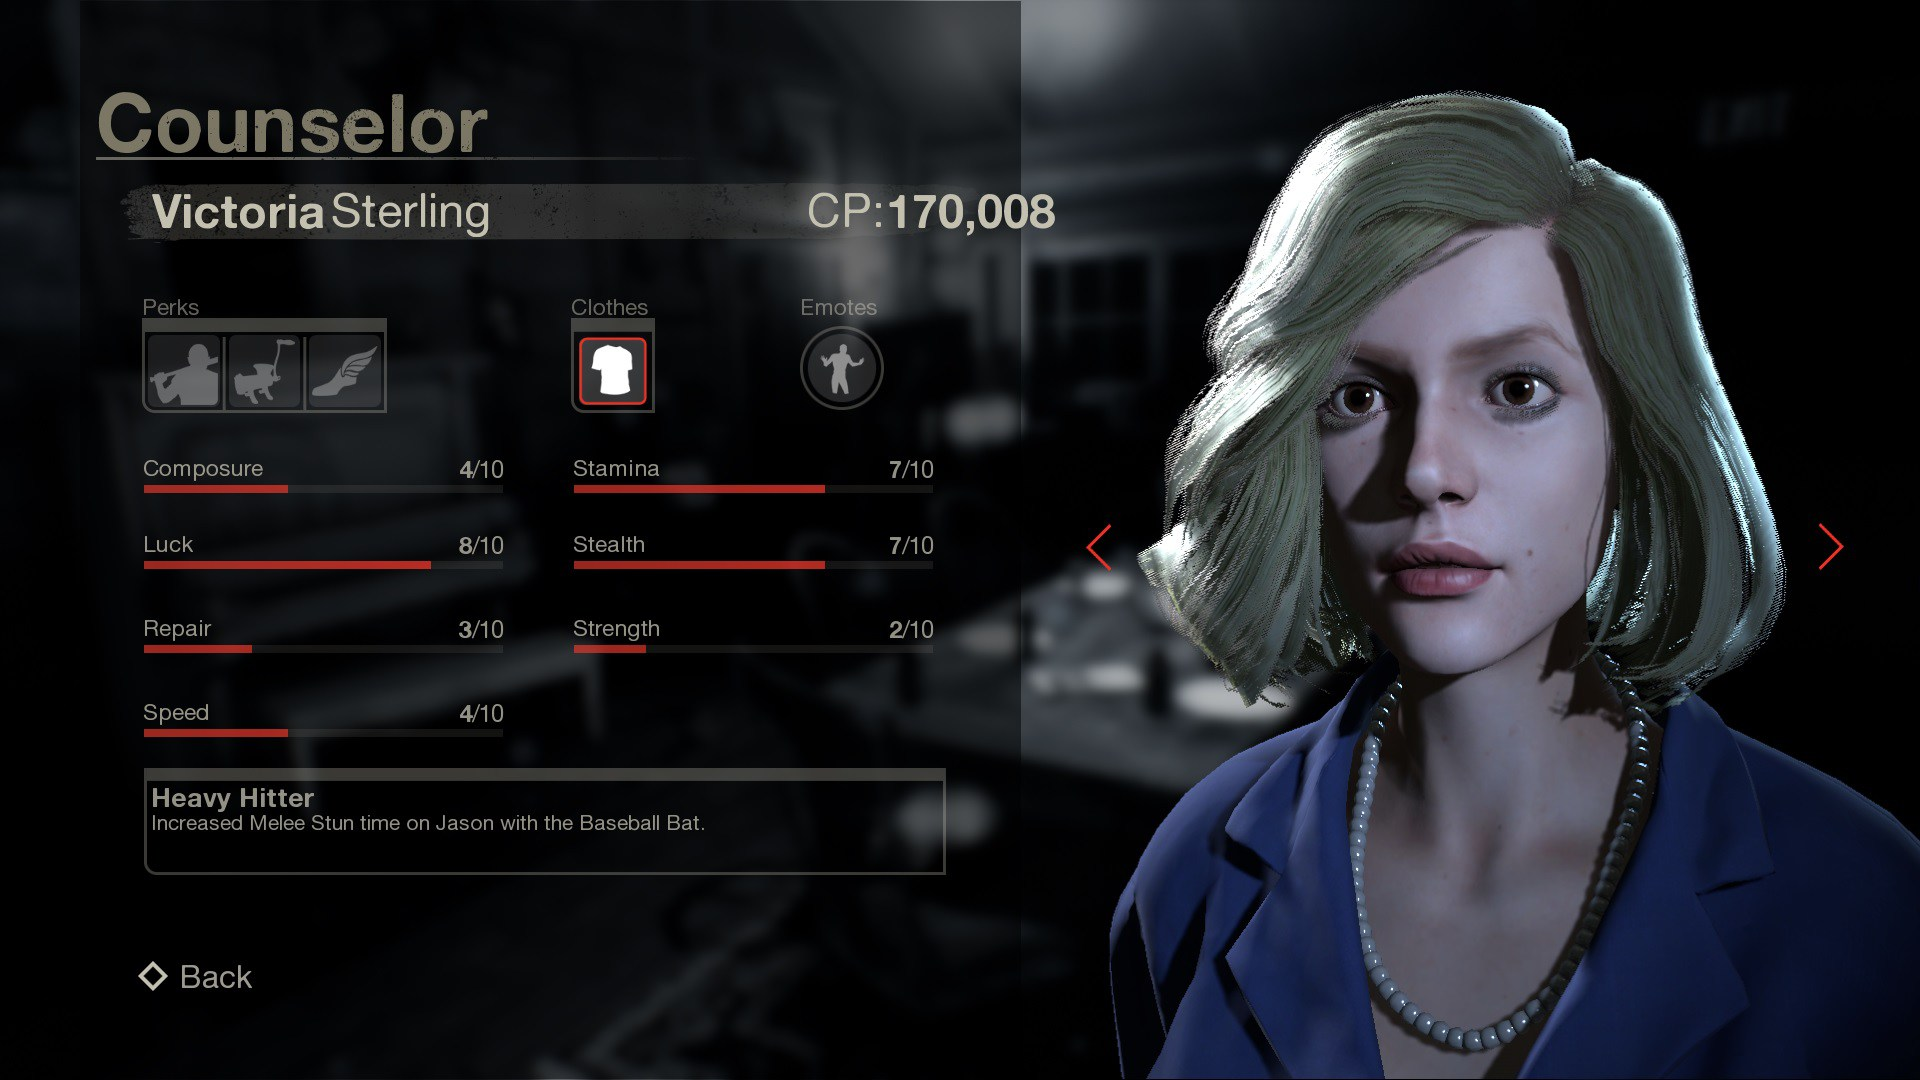 Counselor Victoria Stats